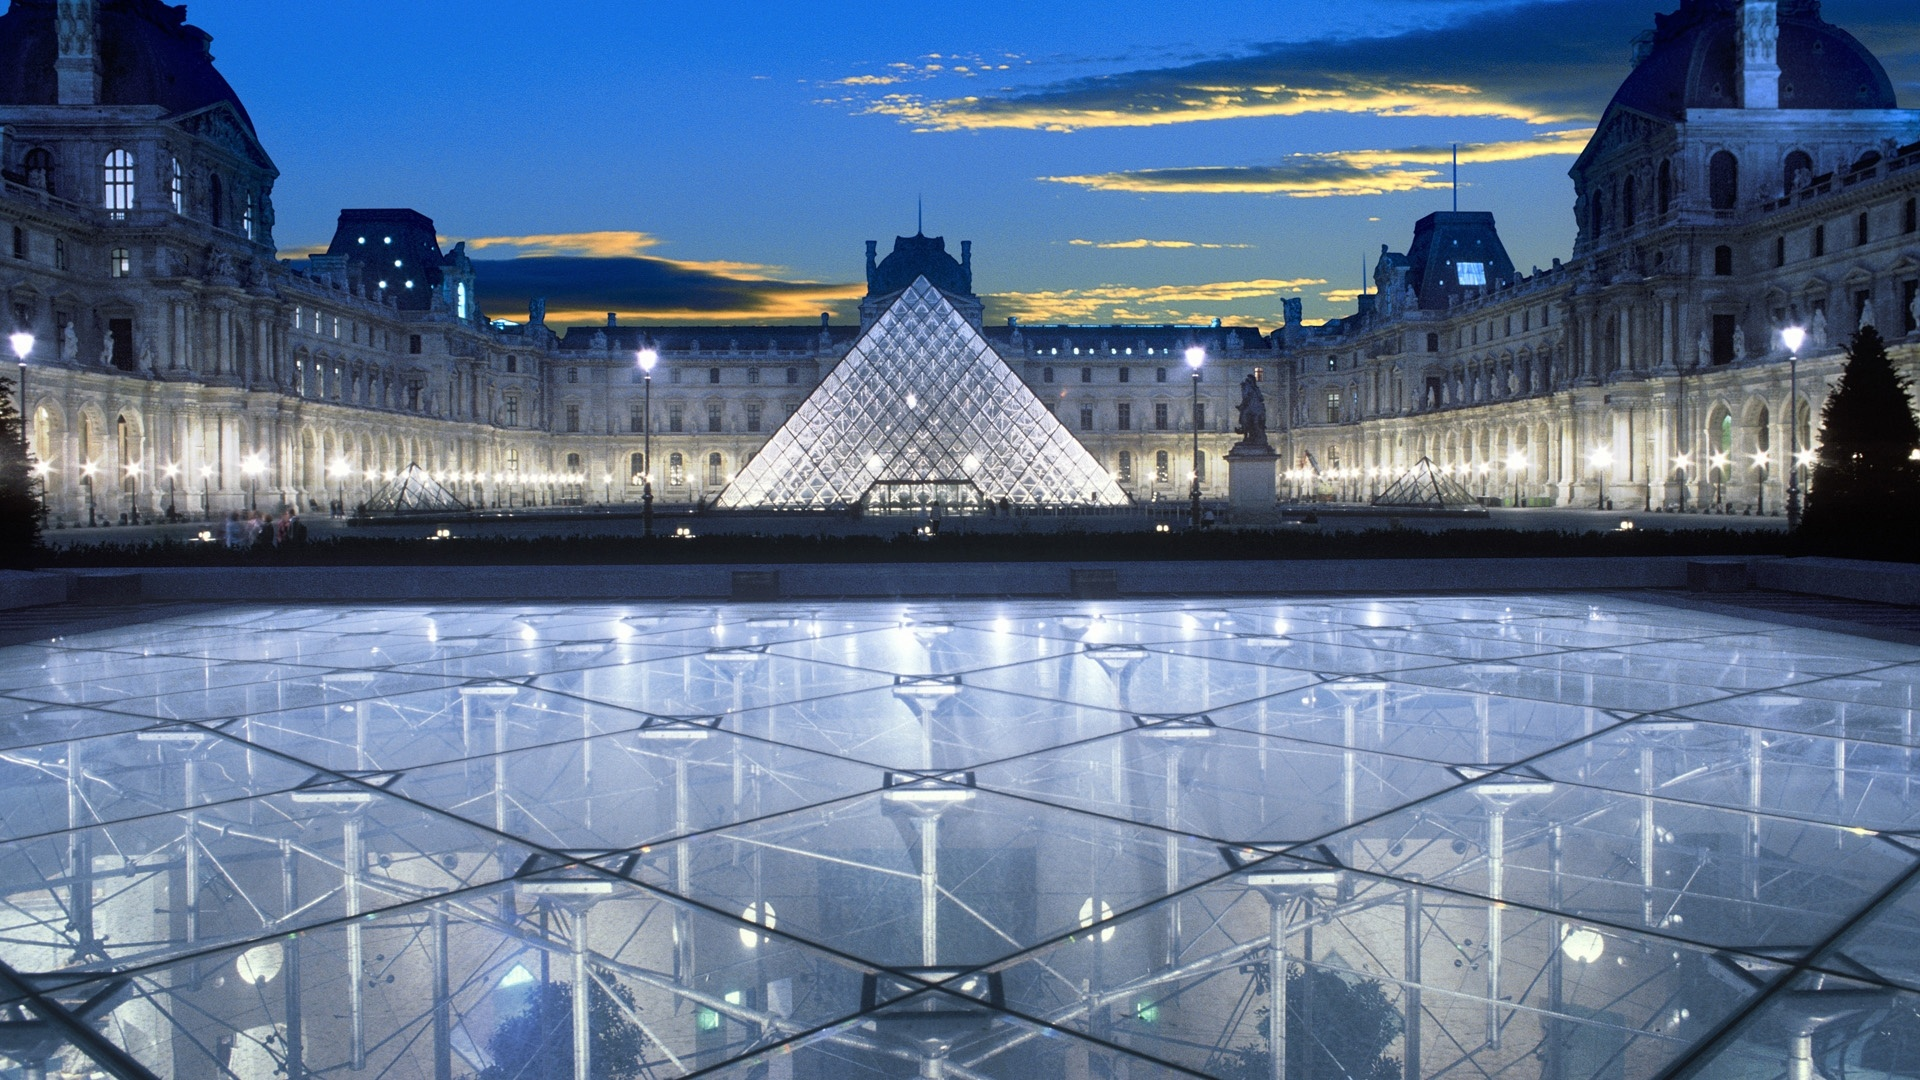 Louvre Museum background wallpaper